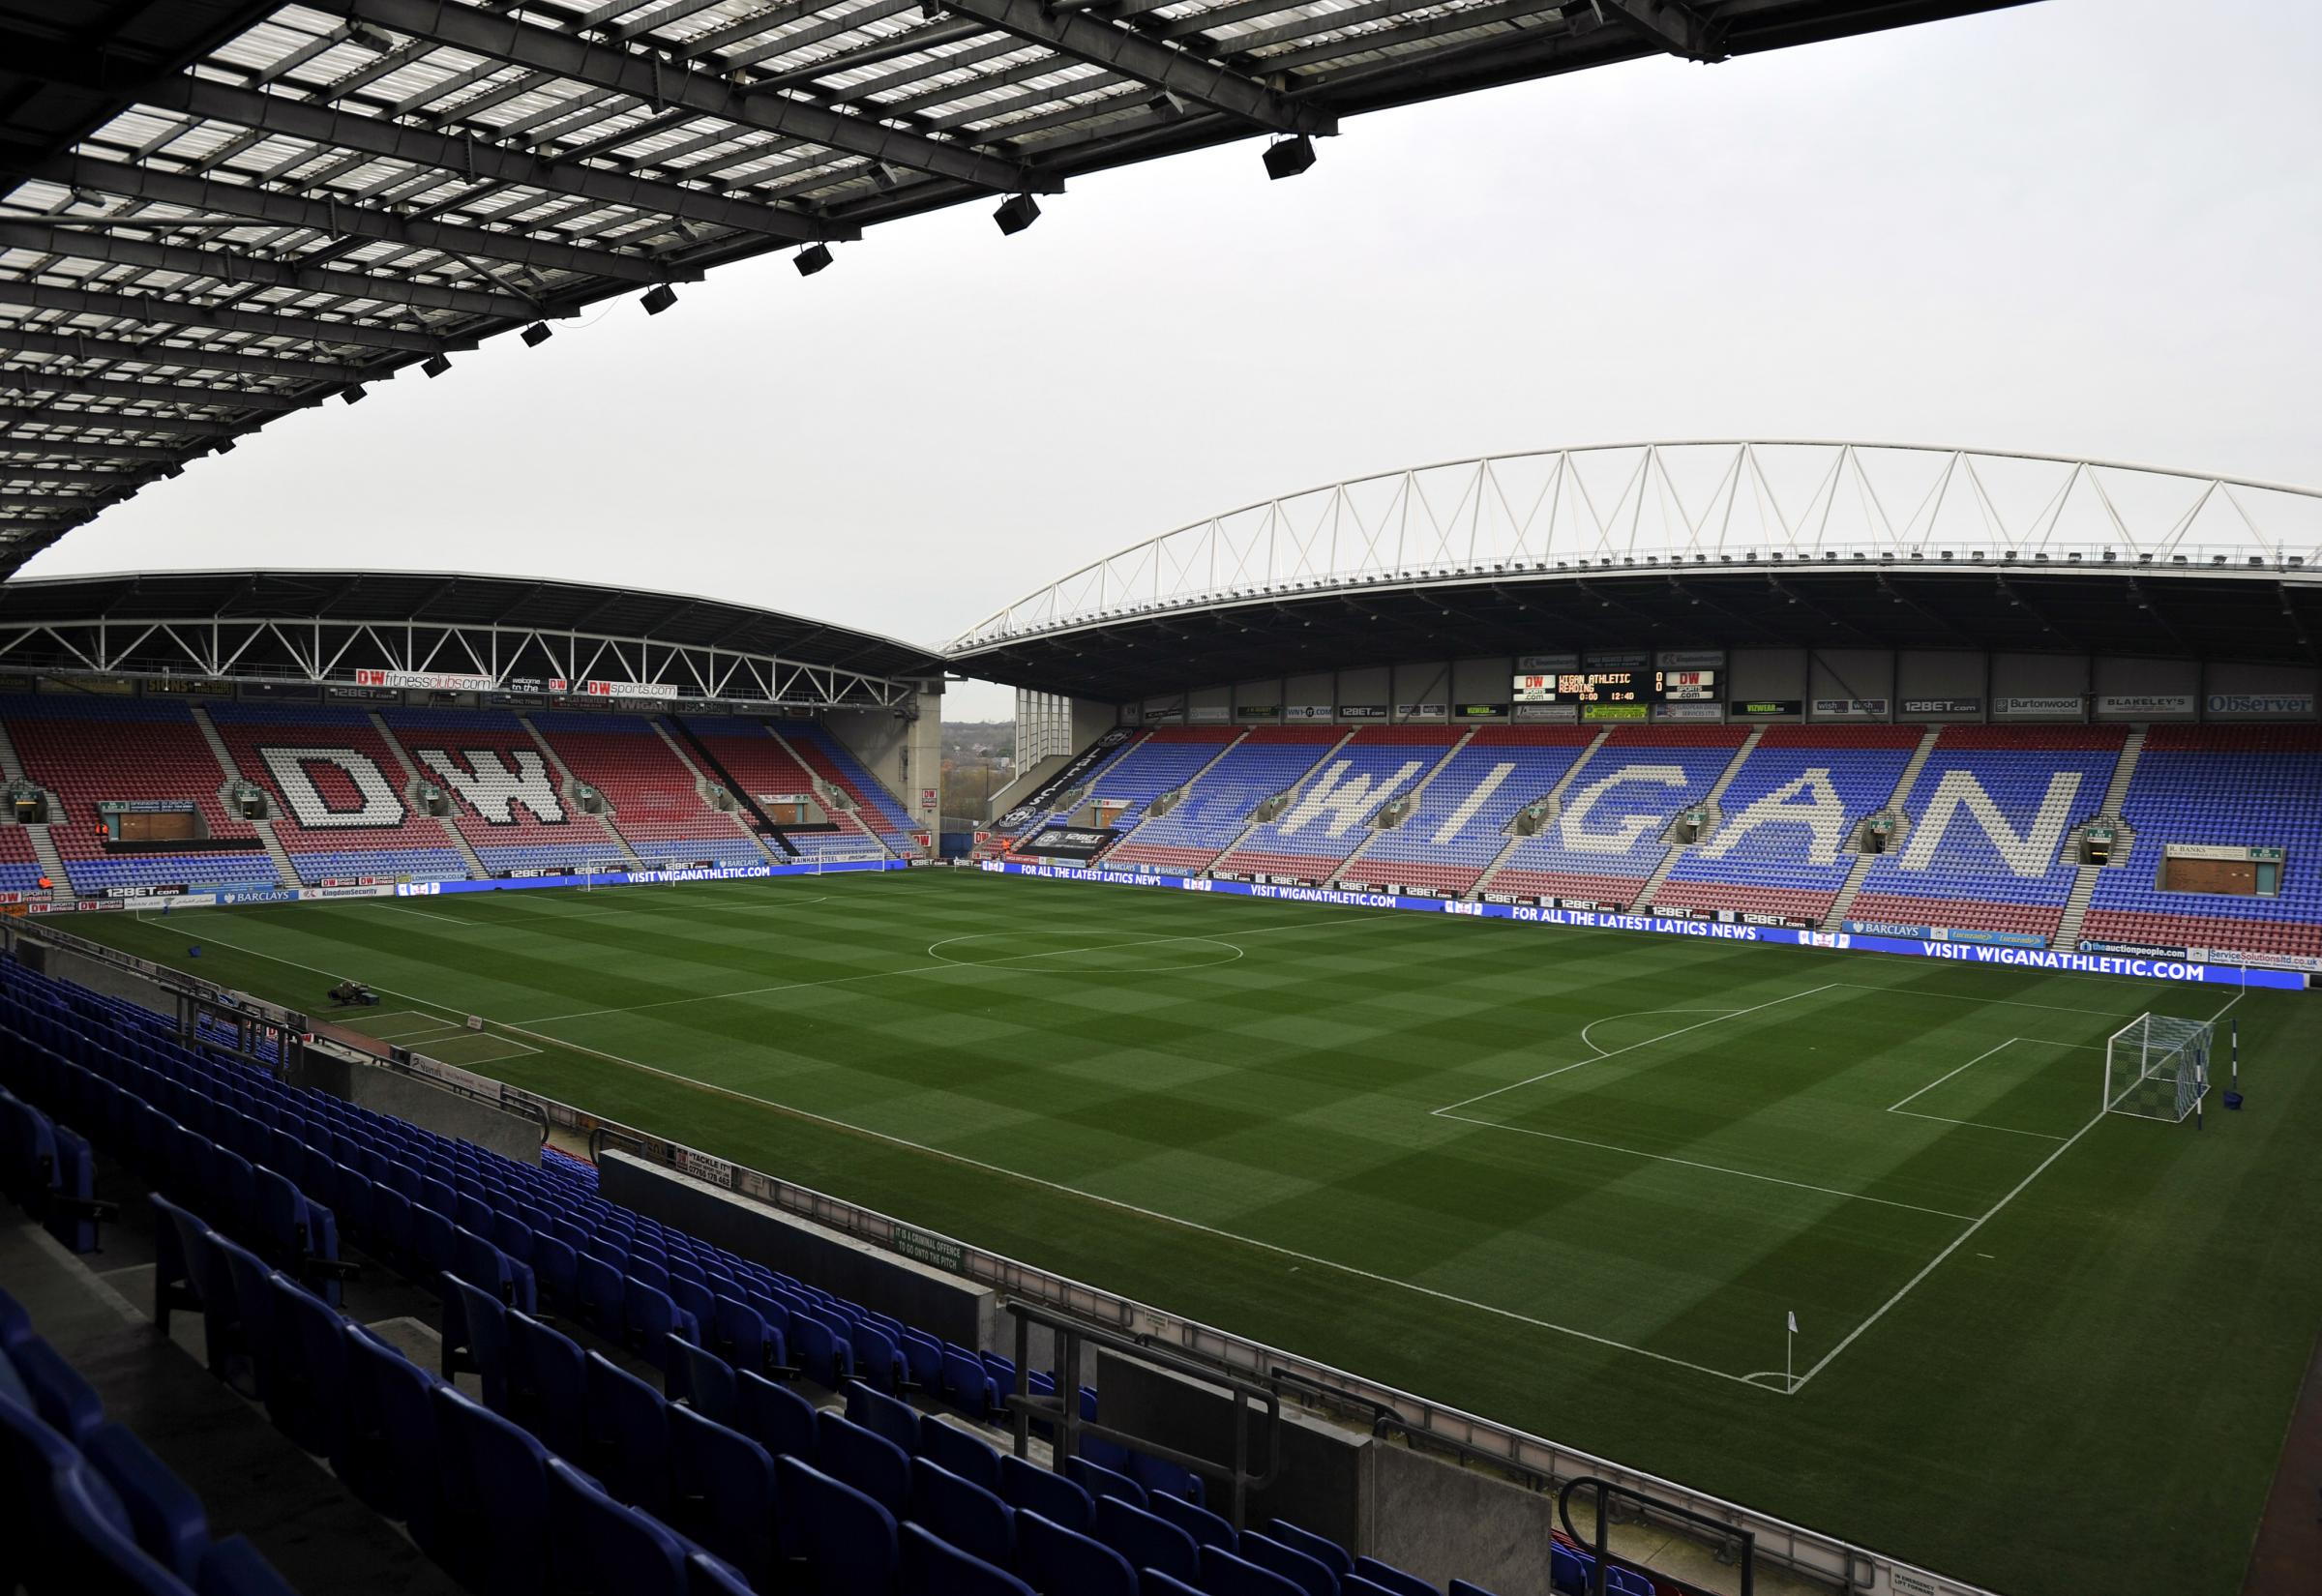 Bolton Wanderers fans react to Wigan Athletic Carabao Cup draw